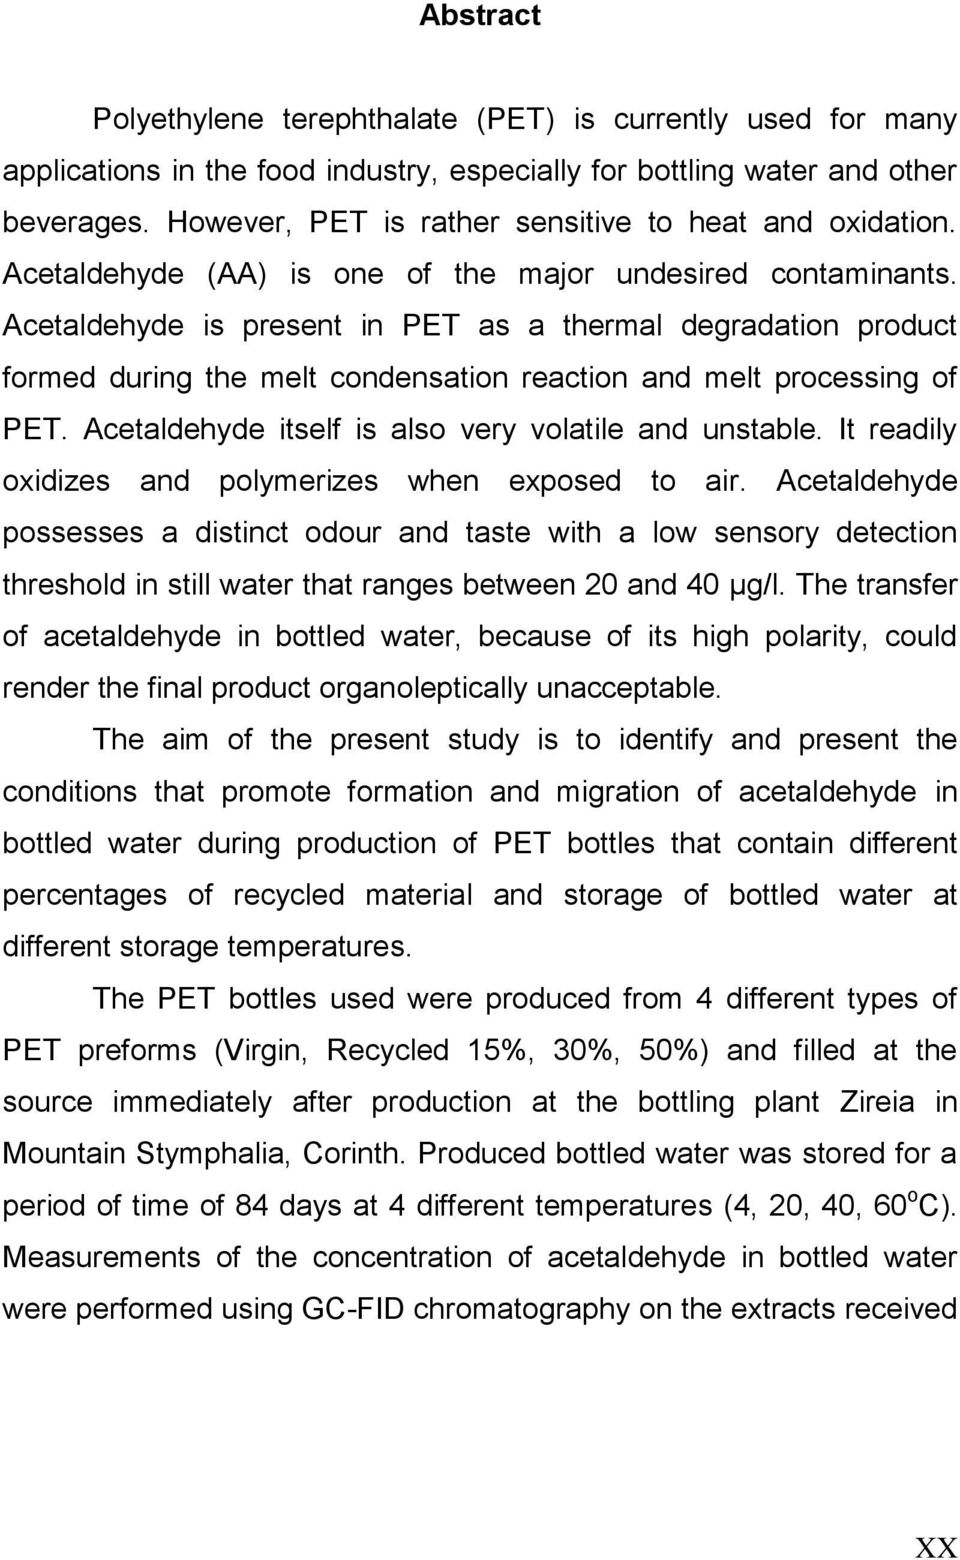 Acetaldehyde is present in PET as a thermal degradation product formed during the melt condensation reaction and melt processing of PET. Acetaldehyde itself is also very volatile and unstable.